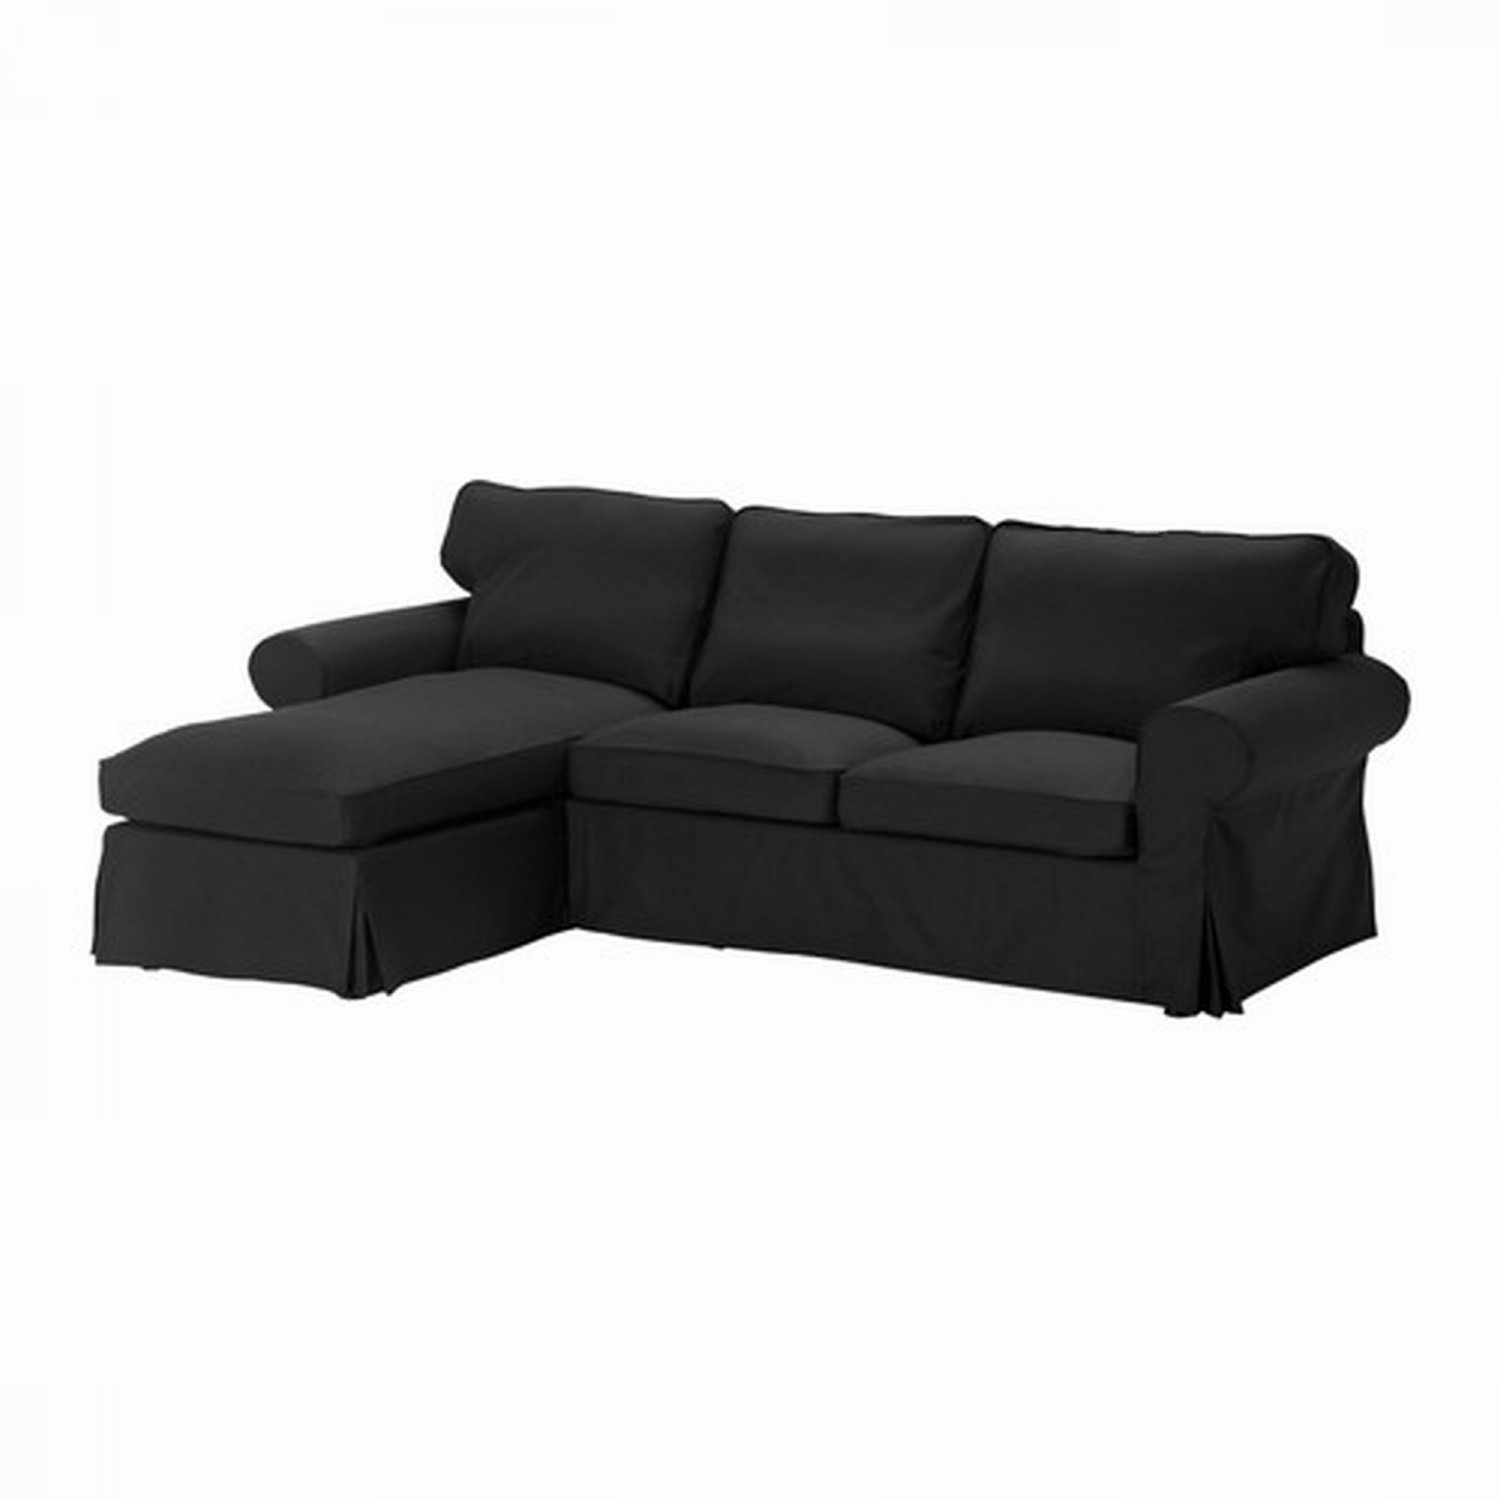 ikea ektorp 2 seat loveseat sofa with chaise cover. Black Bedroom Furniture Sets. Home Design Ideas